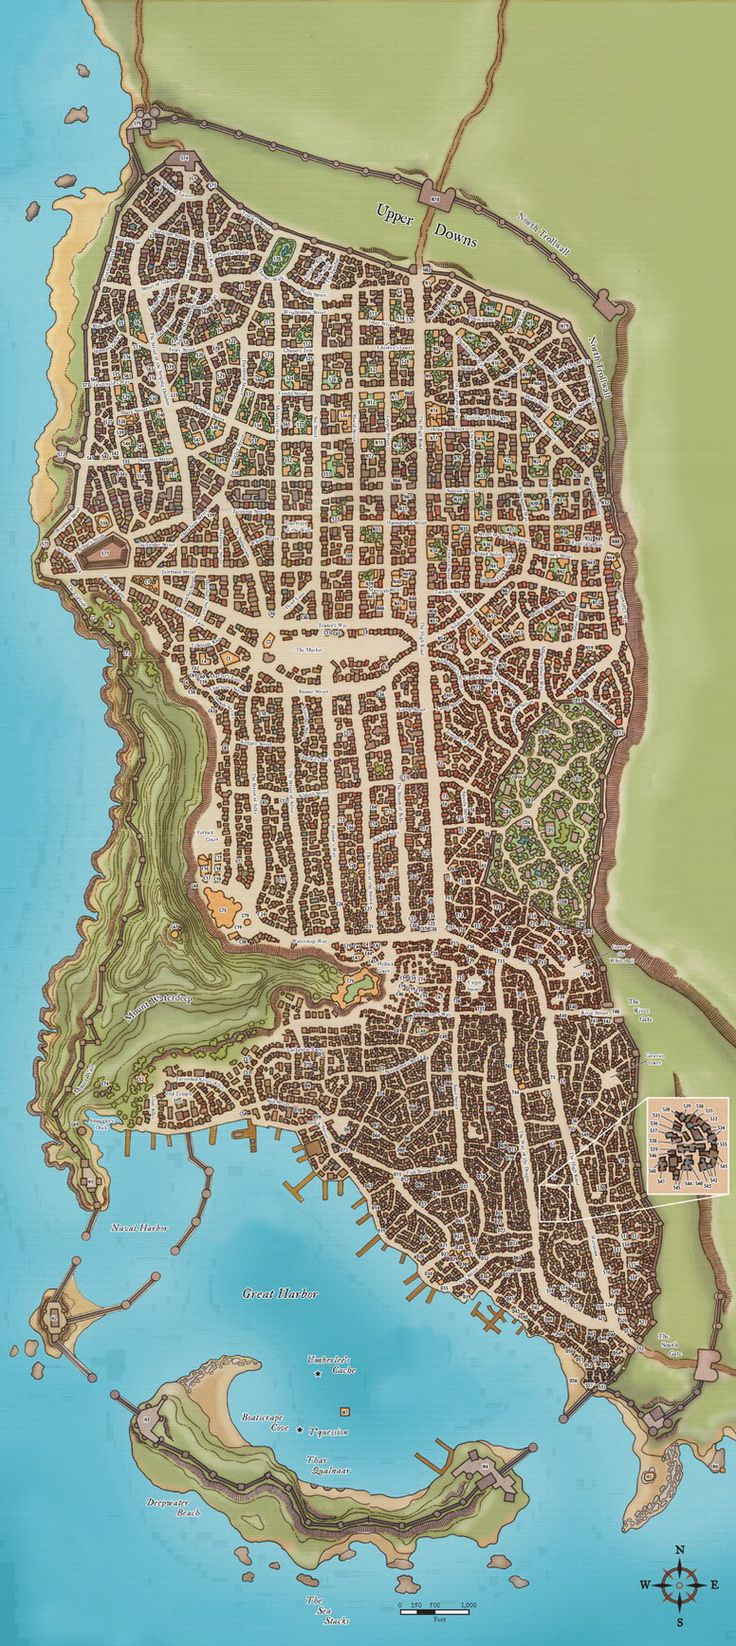 """Waterdeep, also known as the City of Splendors or the Crown of the North, was the most important and influential city in the North and perhaps in all Faerûn. For this reason it was considered part of the Western Heartlands of the Realms, even though it lay 150 miles north of Daggerford on the shores of the Sword Coast. The city sat """"slightly above the 45 degree north latitude line on Toril."""" The road to Waterdeep was well paved and well patrolled. The city was the hub of trading from the..."""